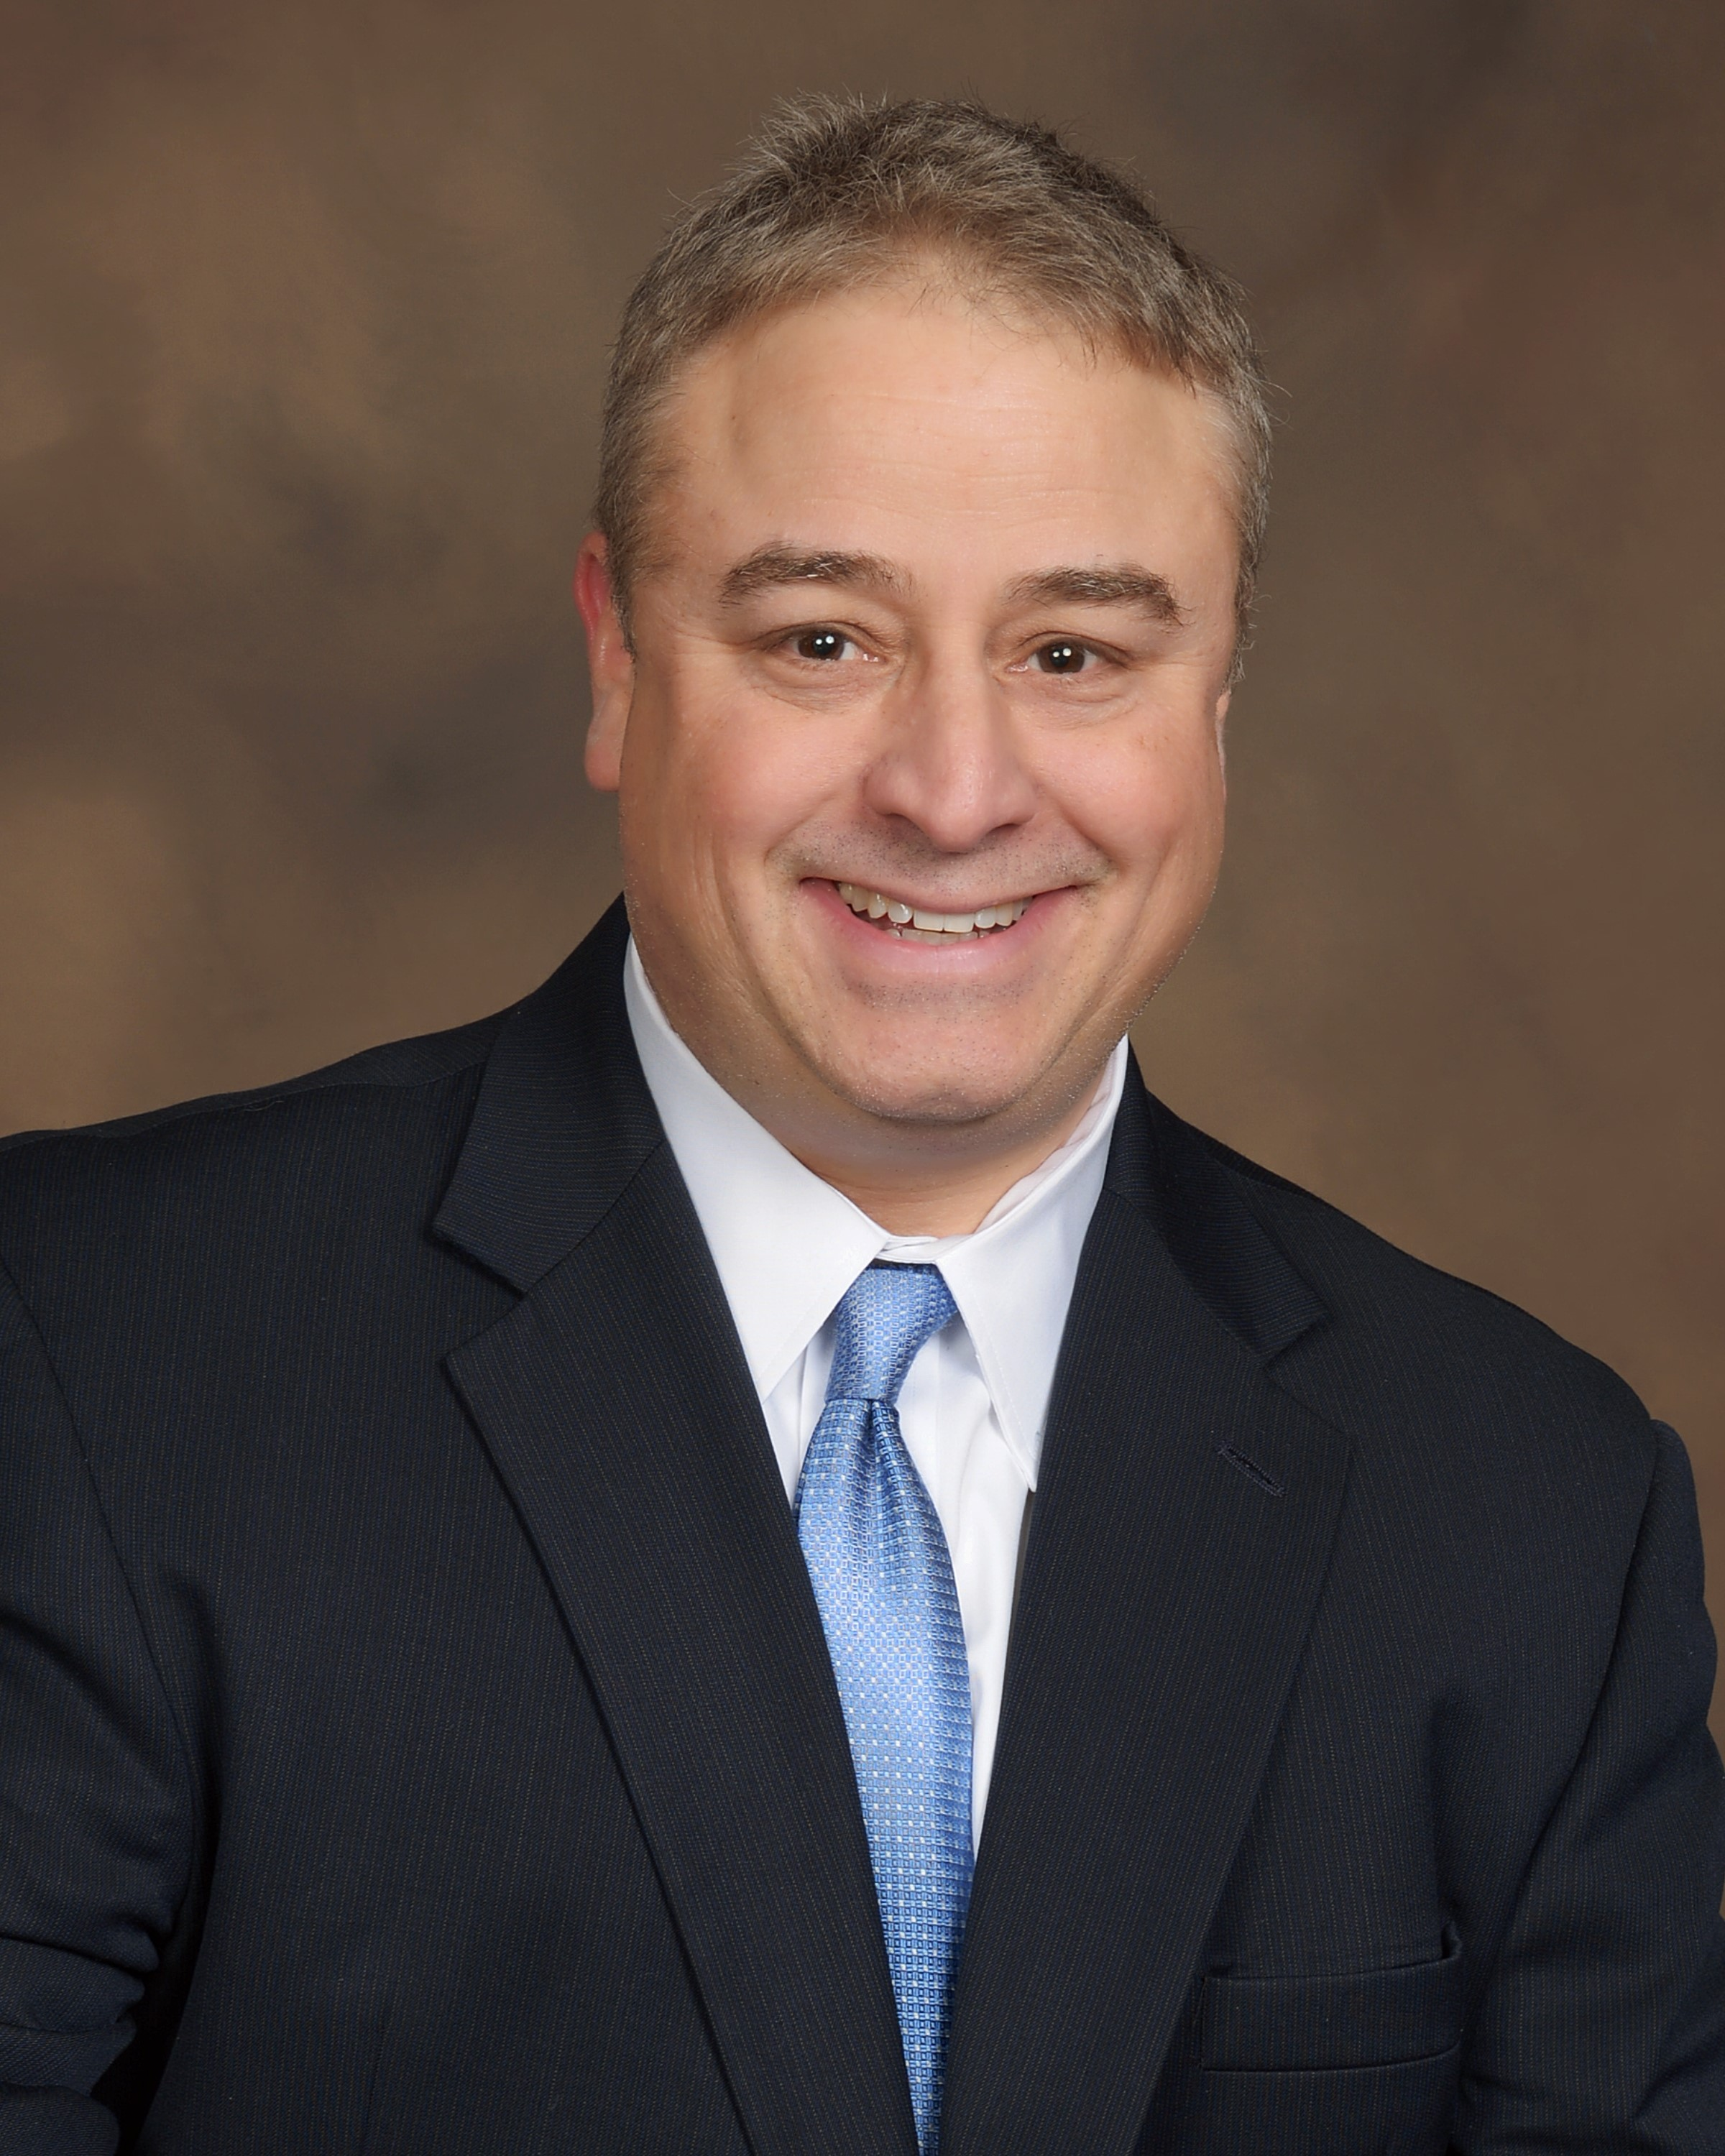 Alan Friedlander, financial advisor Gurnee IL